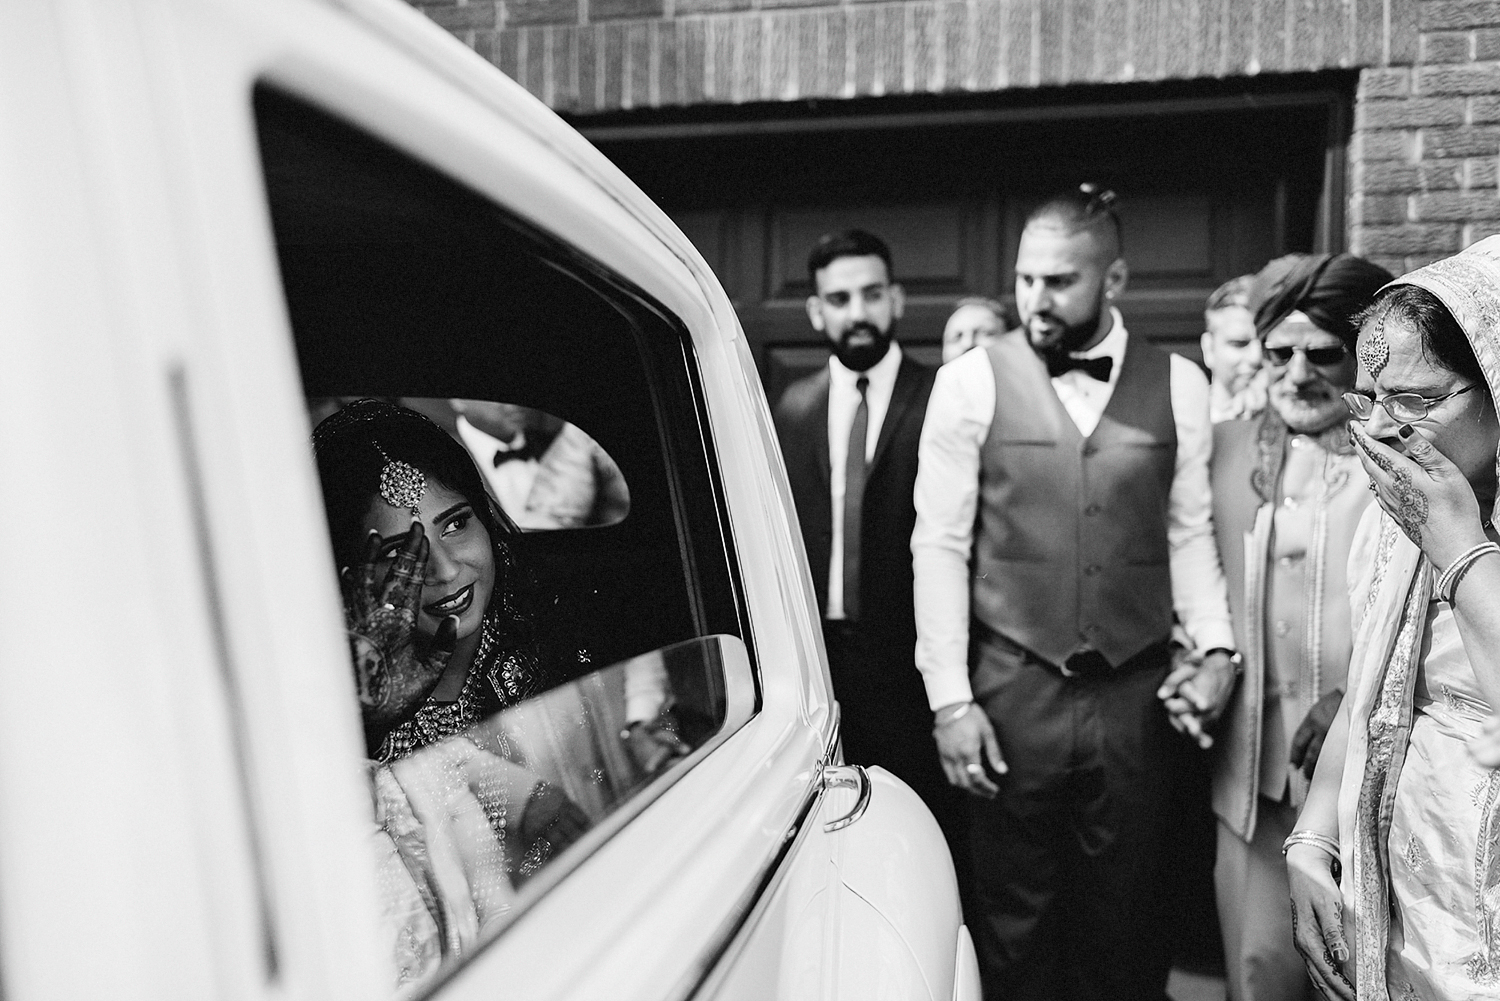 Toronto-Photojournalism-wedding-photographers-3B-Photography-Candid-Documentary-Film-Photography-Analog-Ontario-Hamilton-Port-Perry-Venue-Groom-Getting-Ready-putting-on-turban-sikh-ceremony-emotional-as-she-leaves-in-vintage-car.jpg